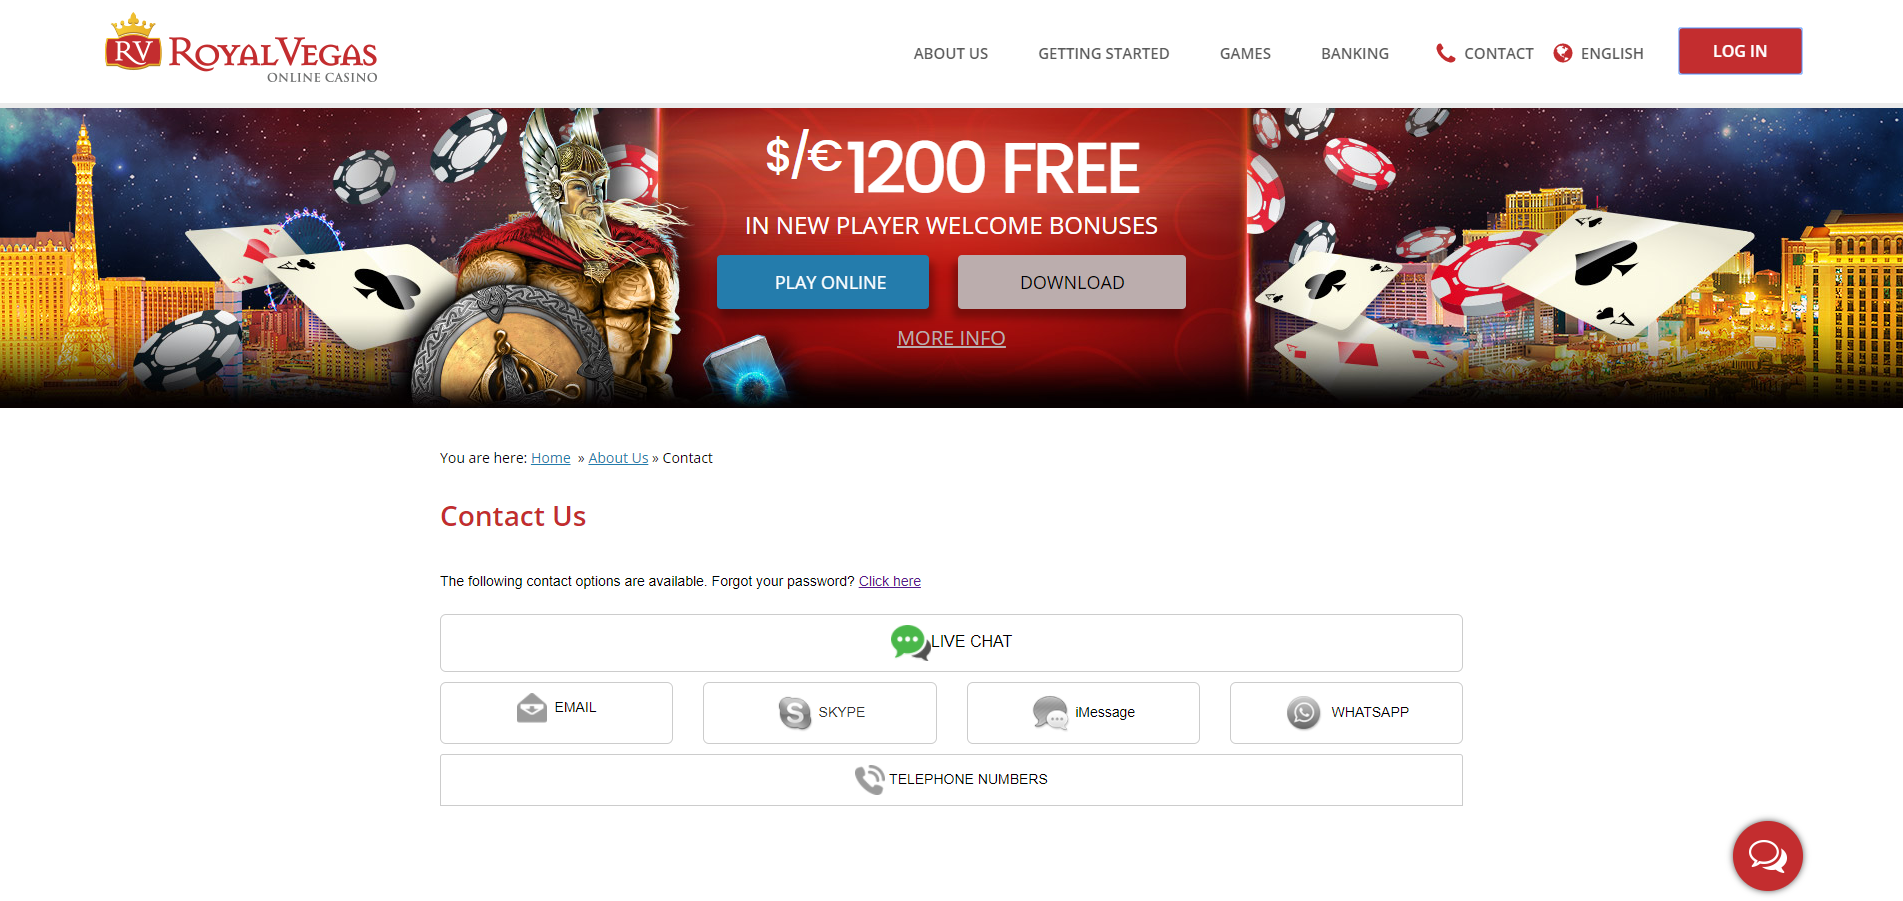 NetBet Casino Online Review With Promotions & Bonuses